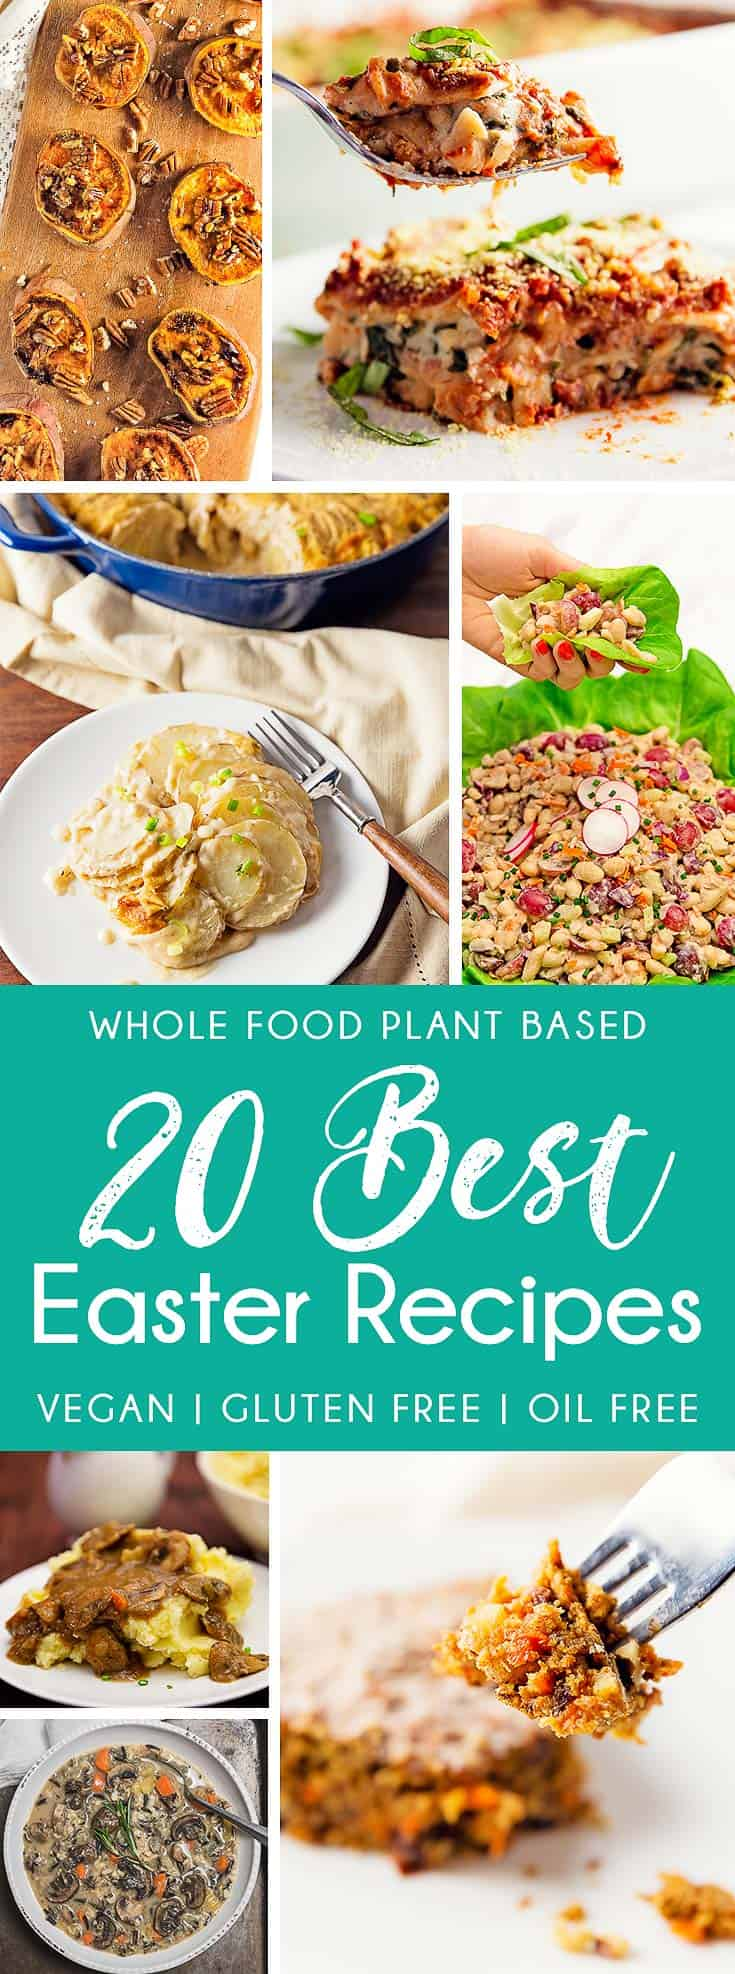 20 Best Easter Recipes, Easter recipes, Holiday recipes, plant based, vegan, vegetarian, whole food plant based, gluten free, recipe, wfpb, healthy, healthy vegan, oil free, no refined sugar, no oil, refined sugar free, dairy free, dinner party, entertaining